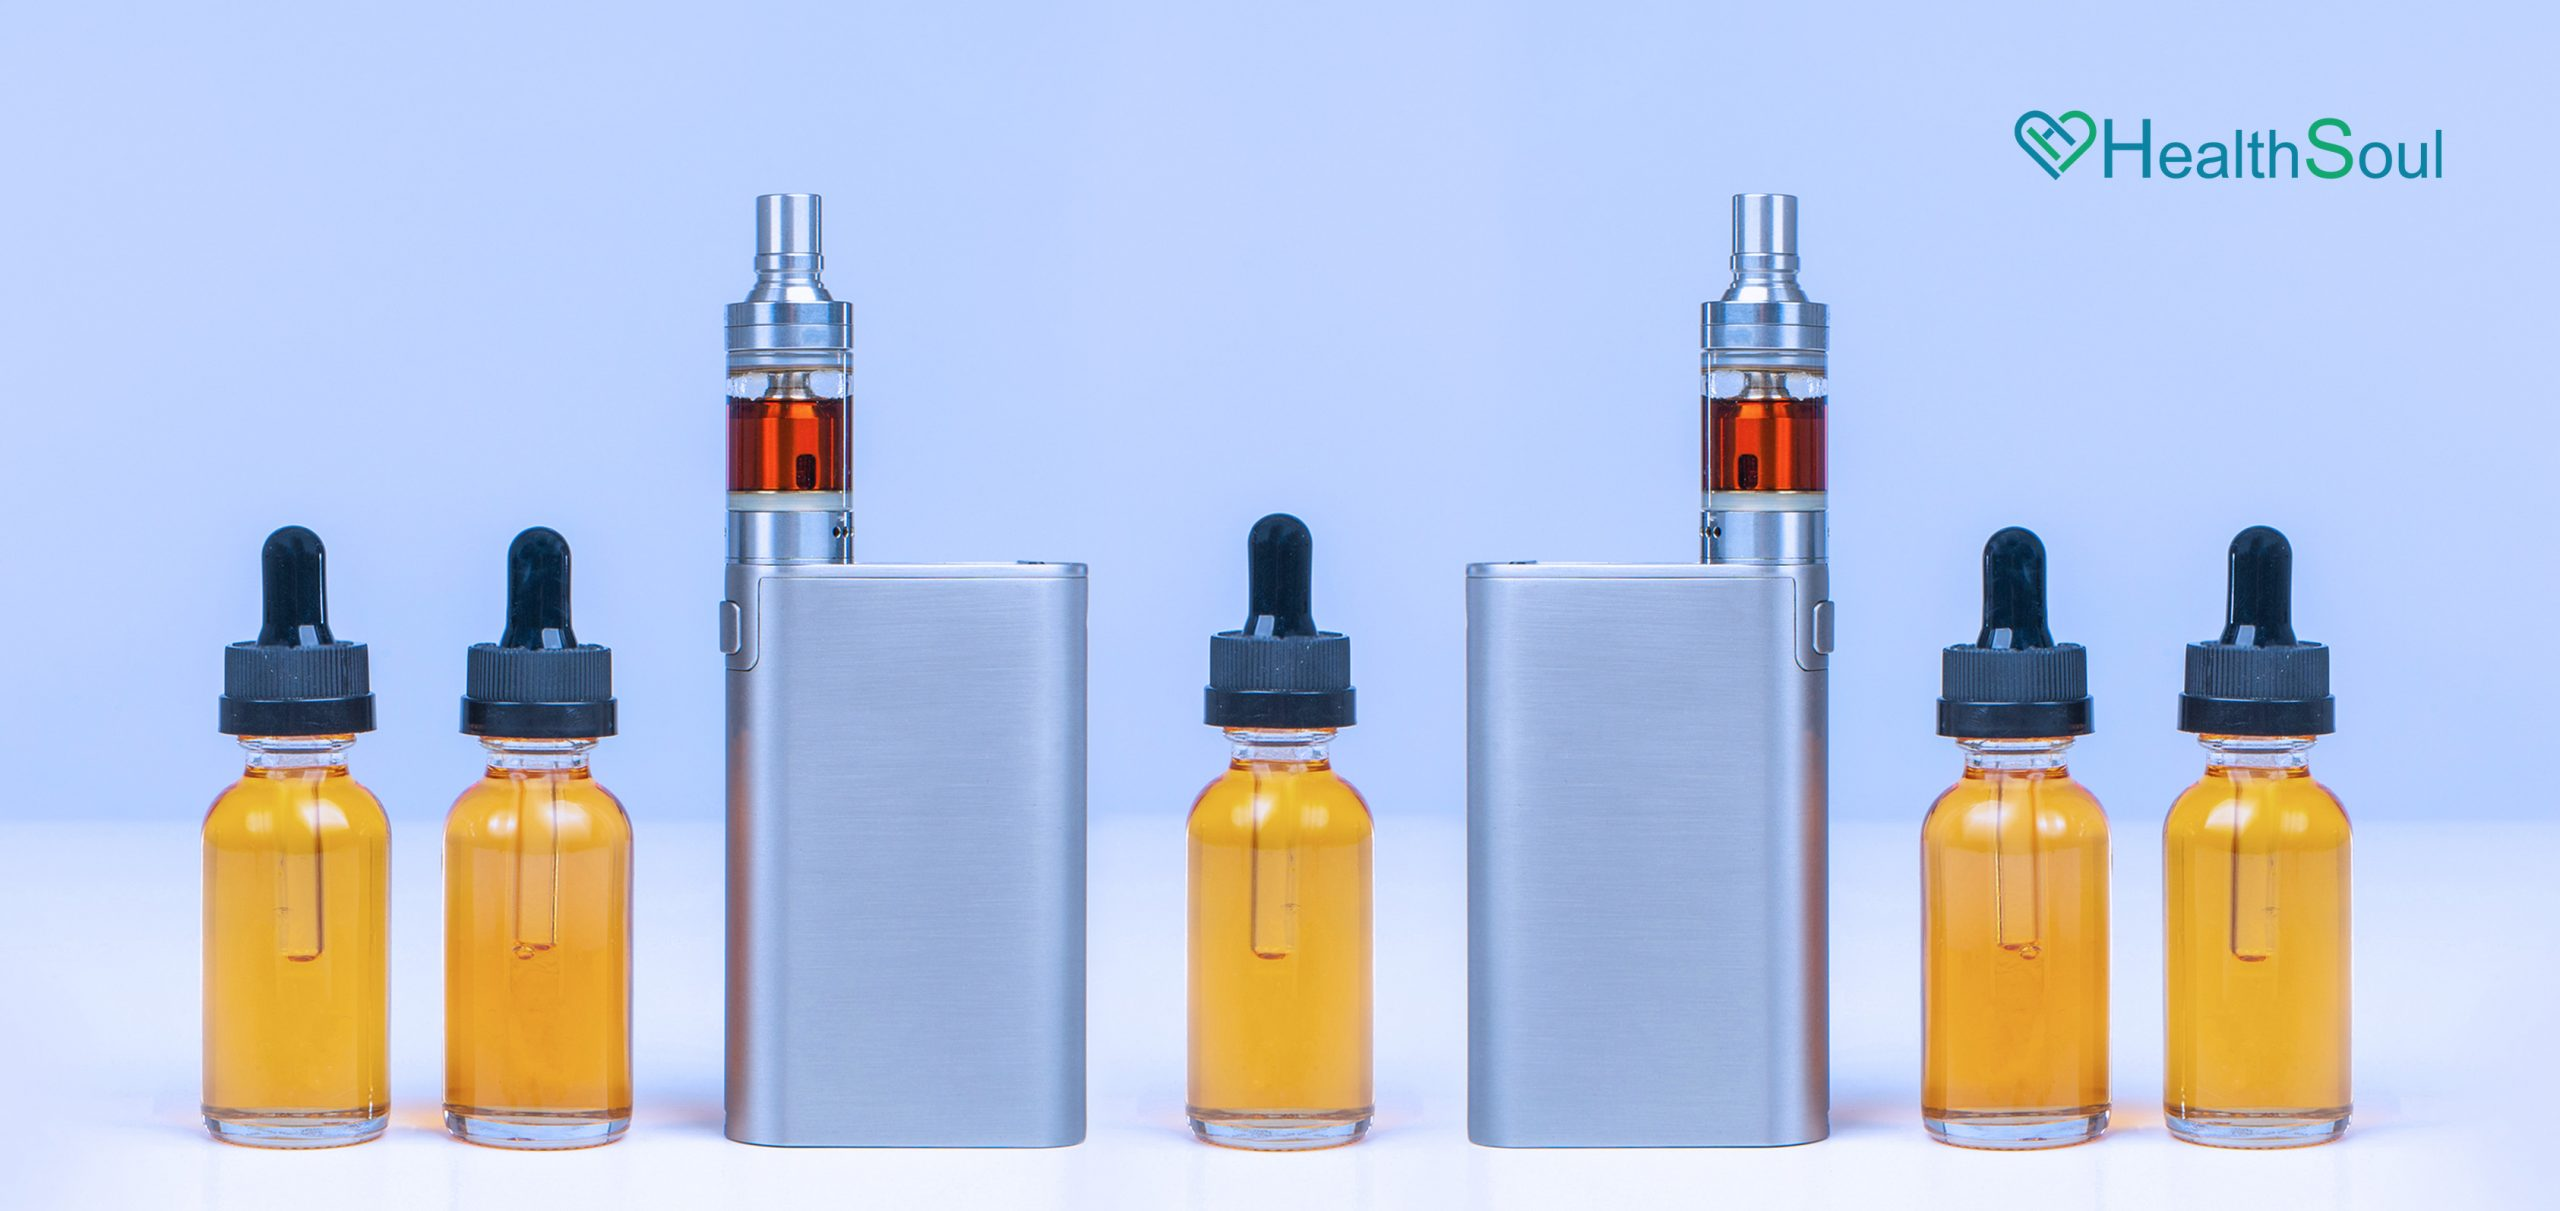 Im trying a new vape juice how can I get accustomed to it   HealthSoul